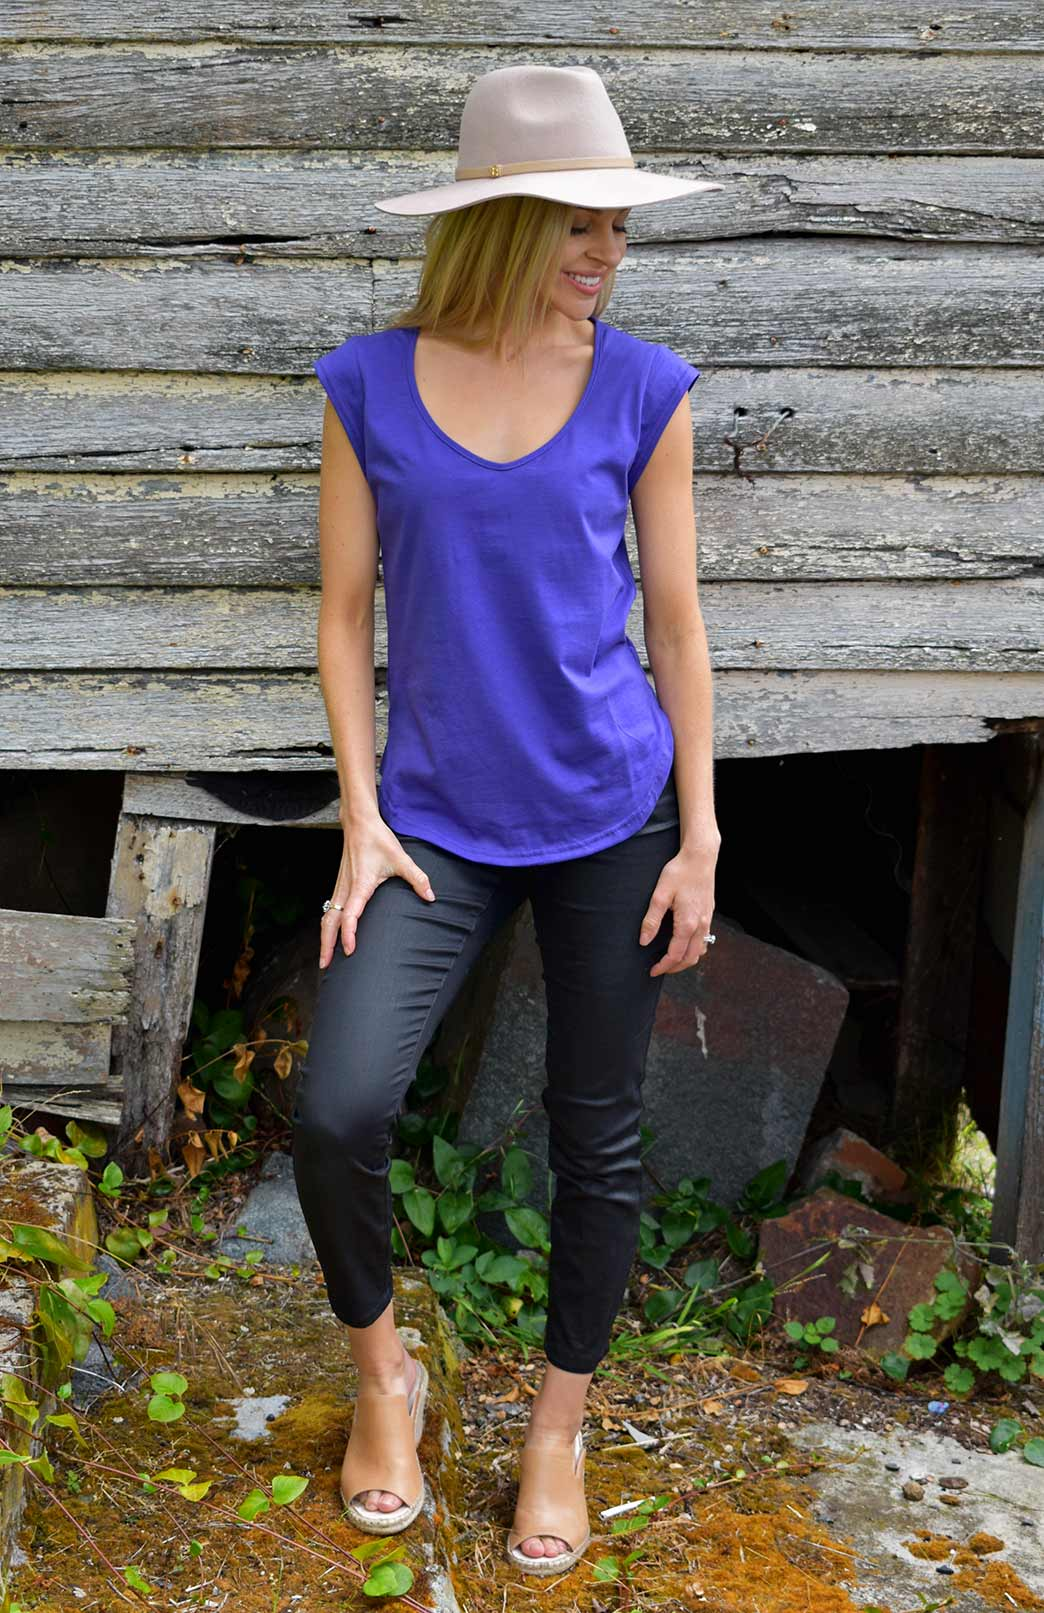 Cap Sleeve T-Shirt (Organic Cotton) - Women's Purple Organic Cotton Cap Sleeve T-Shirt with Sweetheart Neckline and Side Detailing - Smitten Merino Tasmania Australia